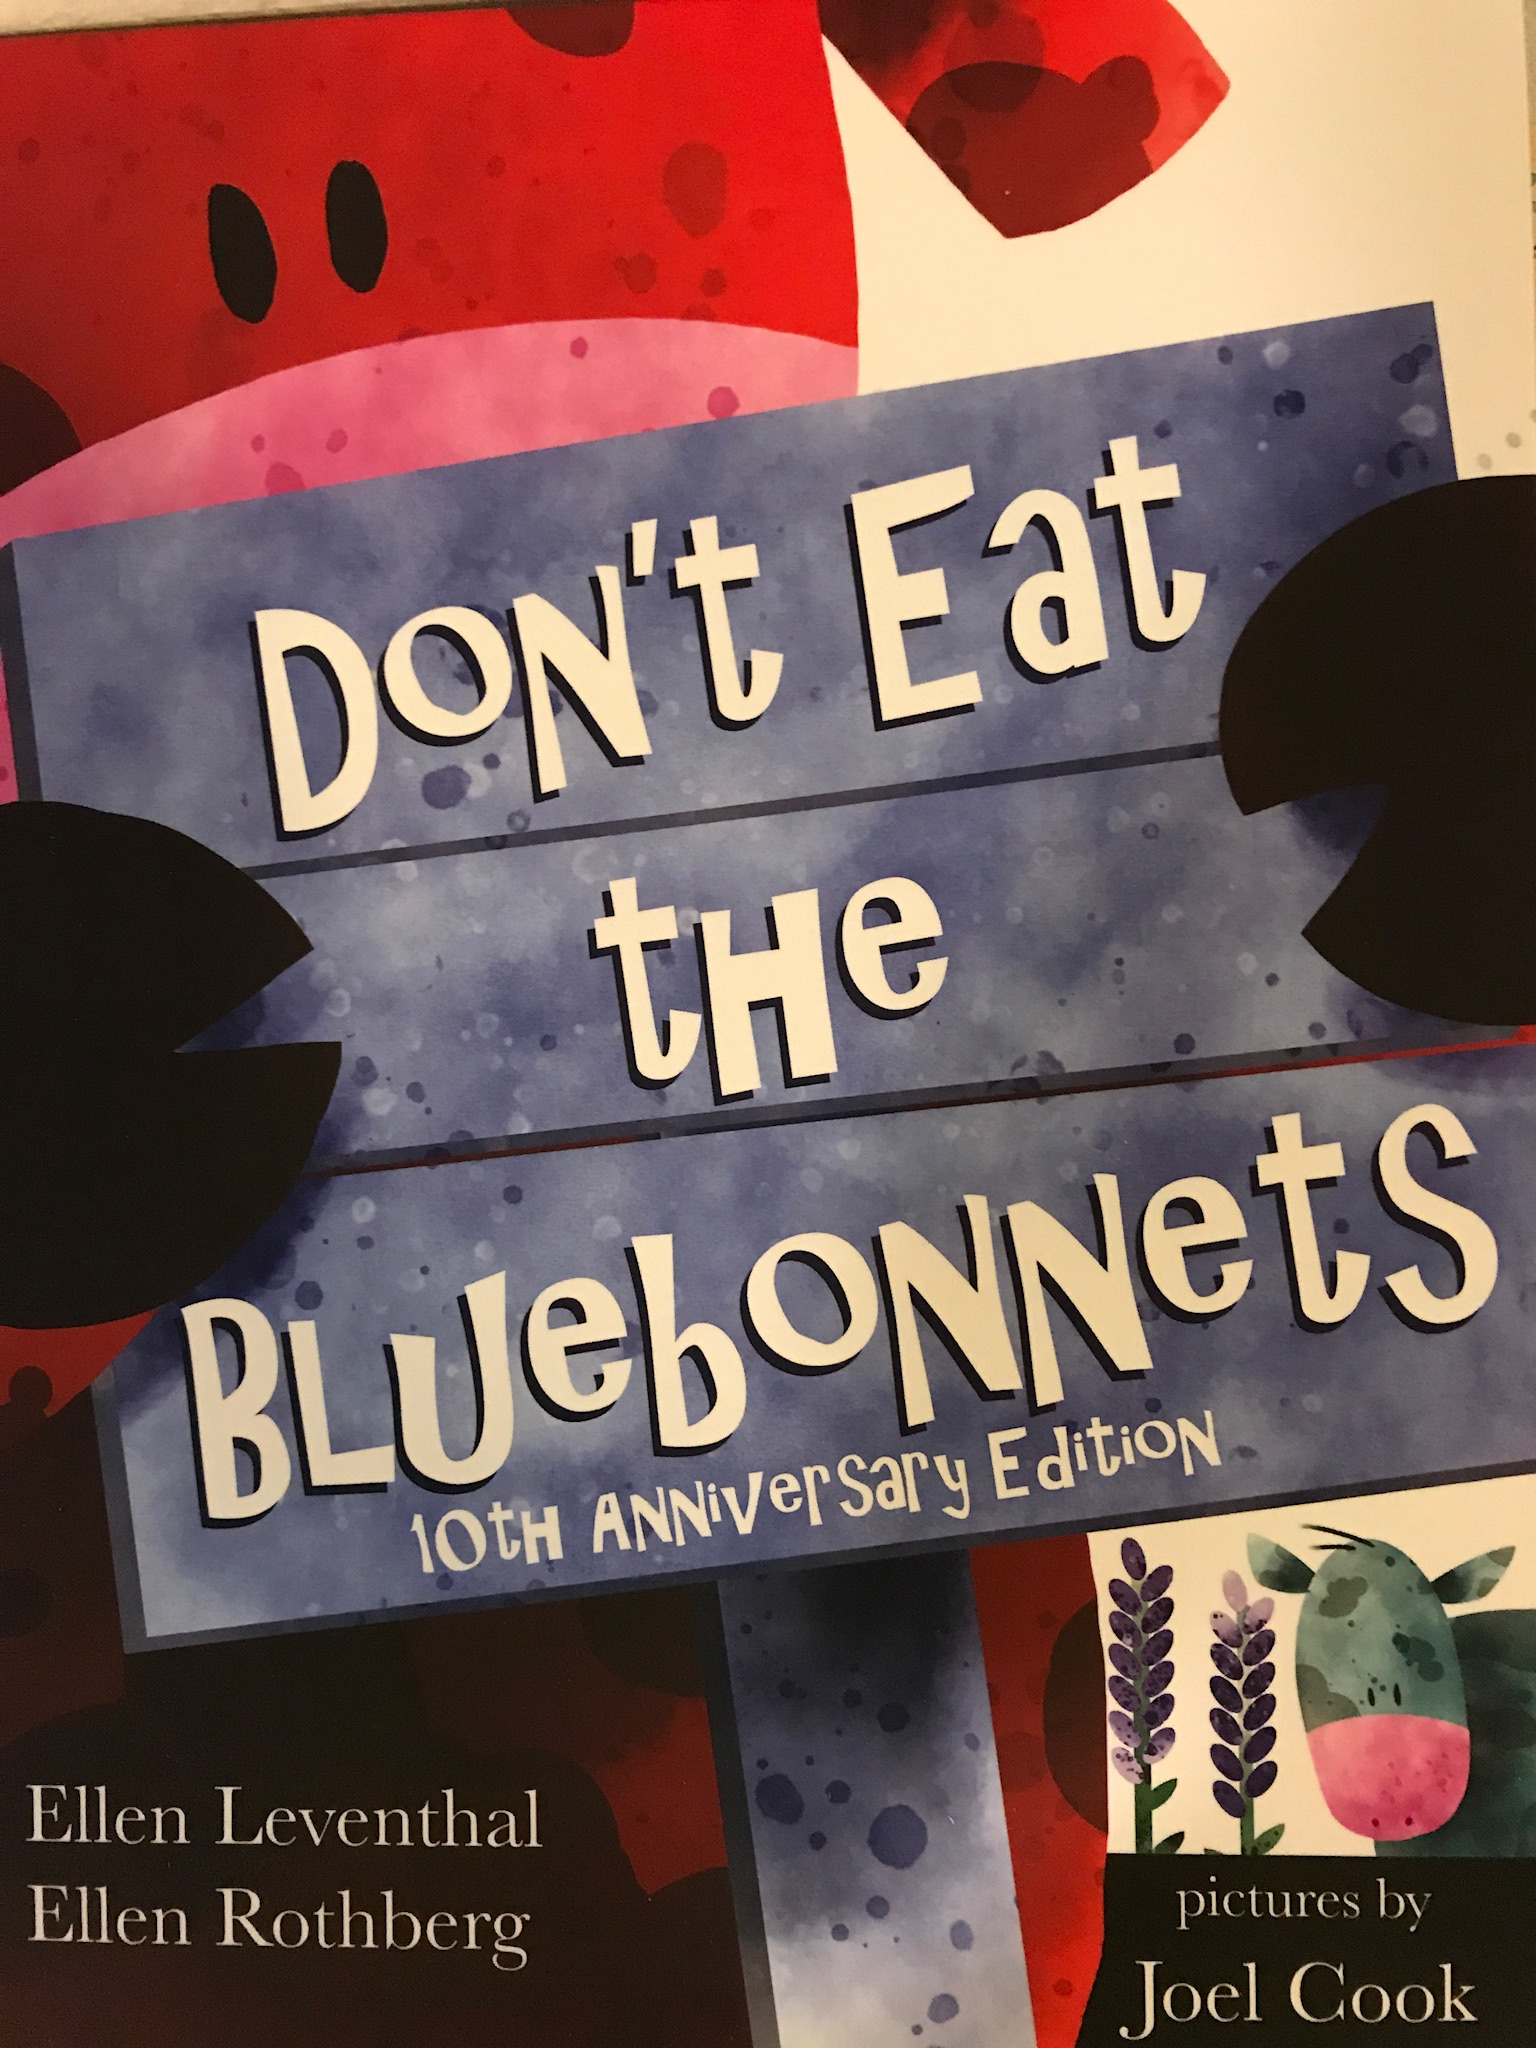 DON'T EAT THE BLUEBONNETS